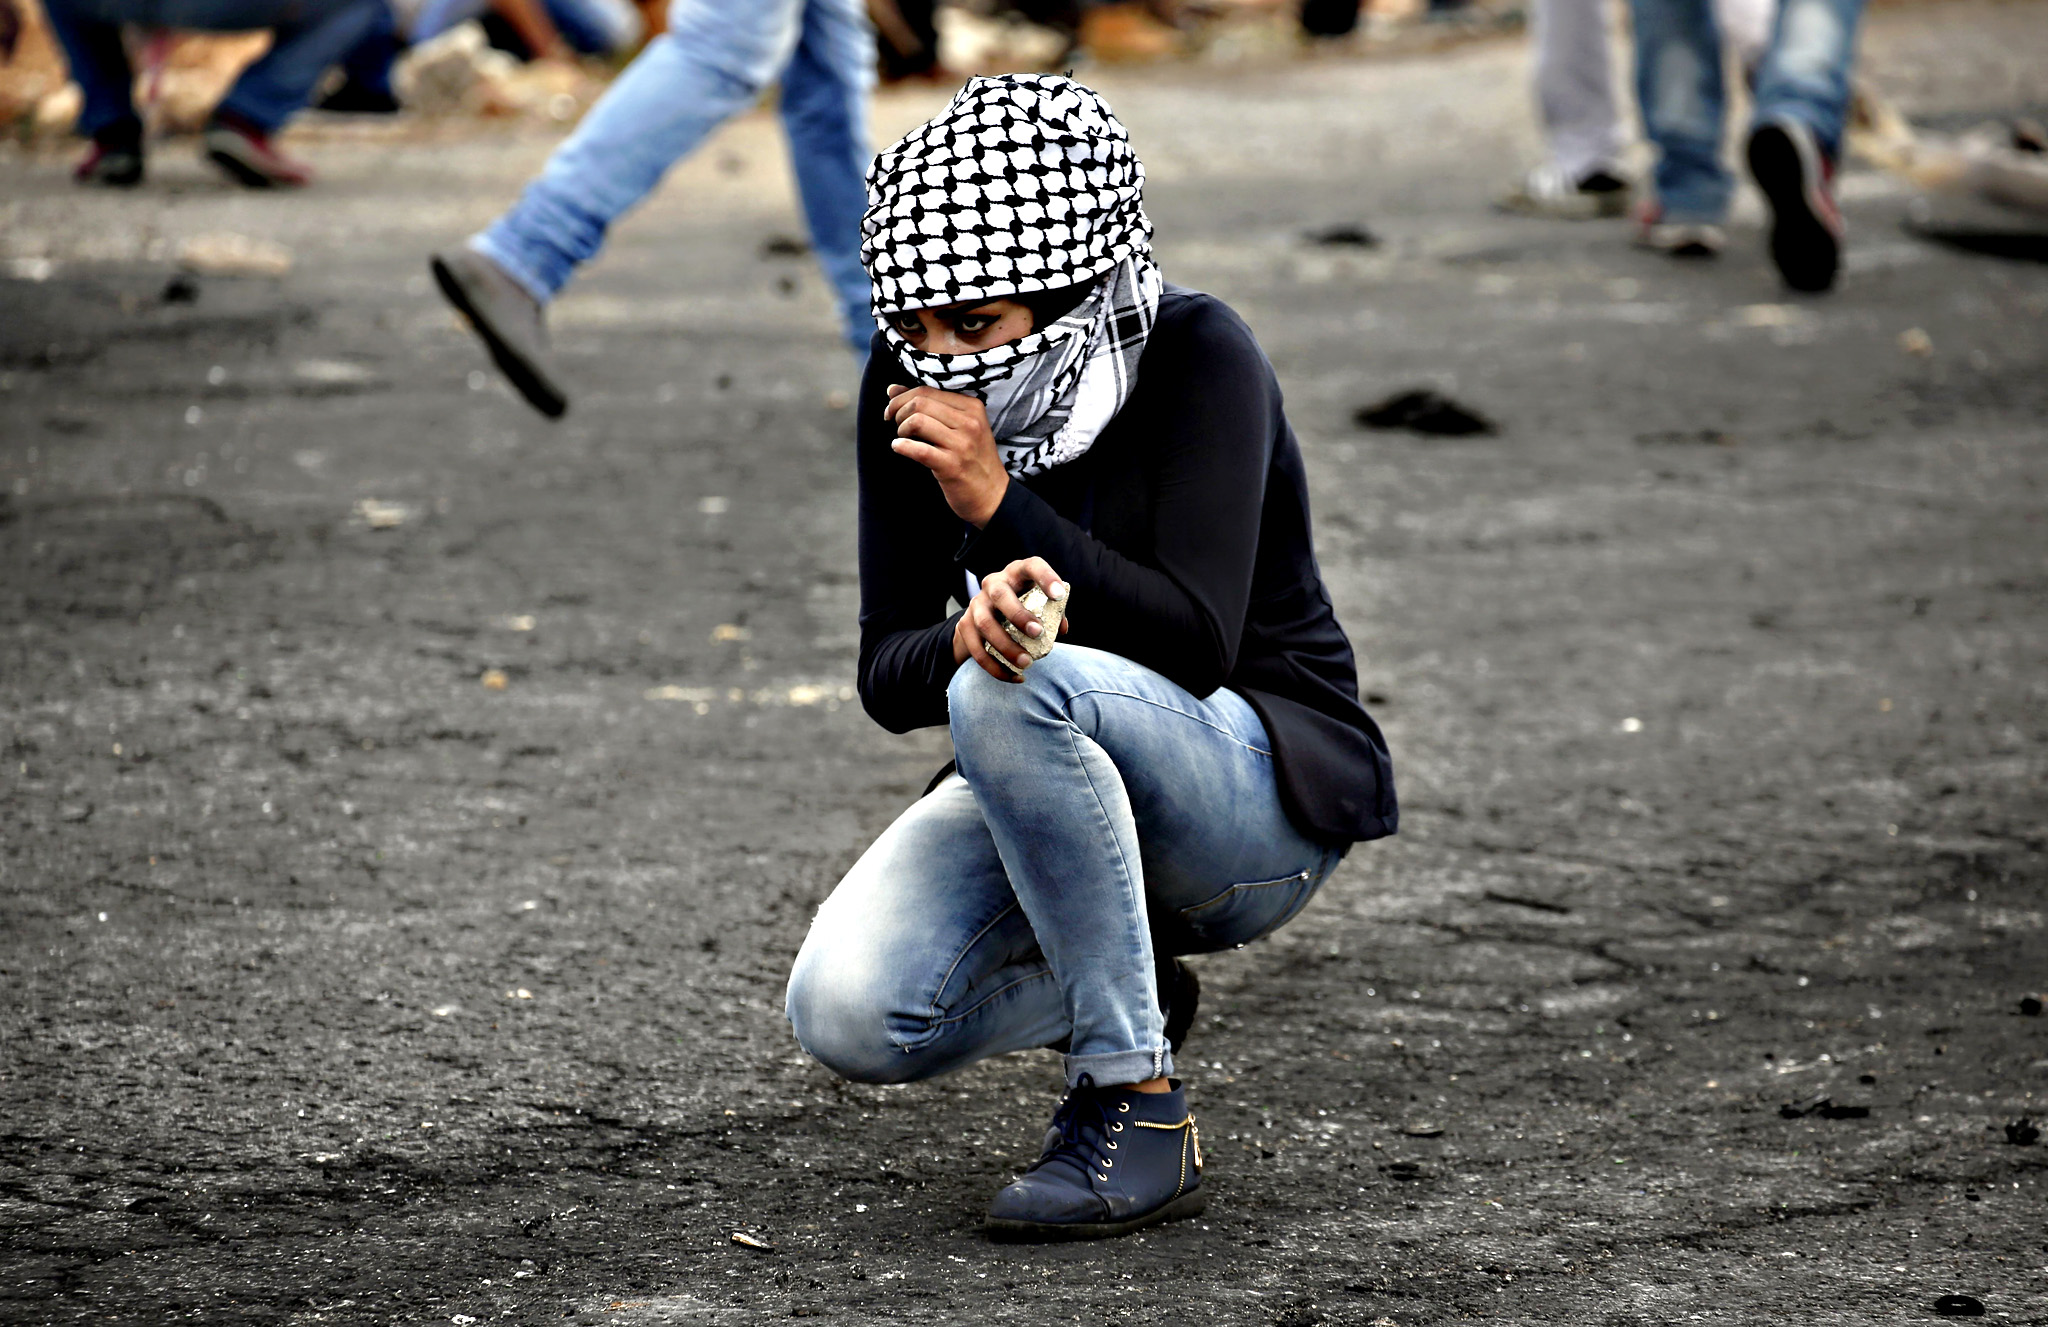 A Palestinian young woman from the Birzeit University looks on during clashes with Israeli security forces in Beit El, on the outskirts of the West Bank city of Ramallah, on October 7, 2015. New violence rocked Israel and the Israeli-occupied West Bank, including a stabbing in annexed east Jerusalem, even as Israel and Palestinian president Mahmud Abbas took steps to ease tensions